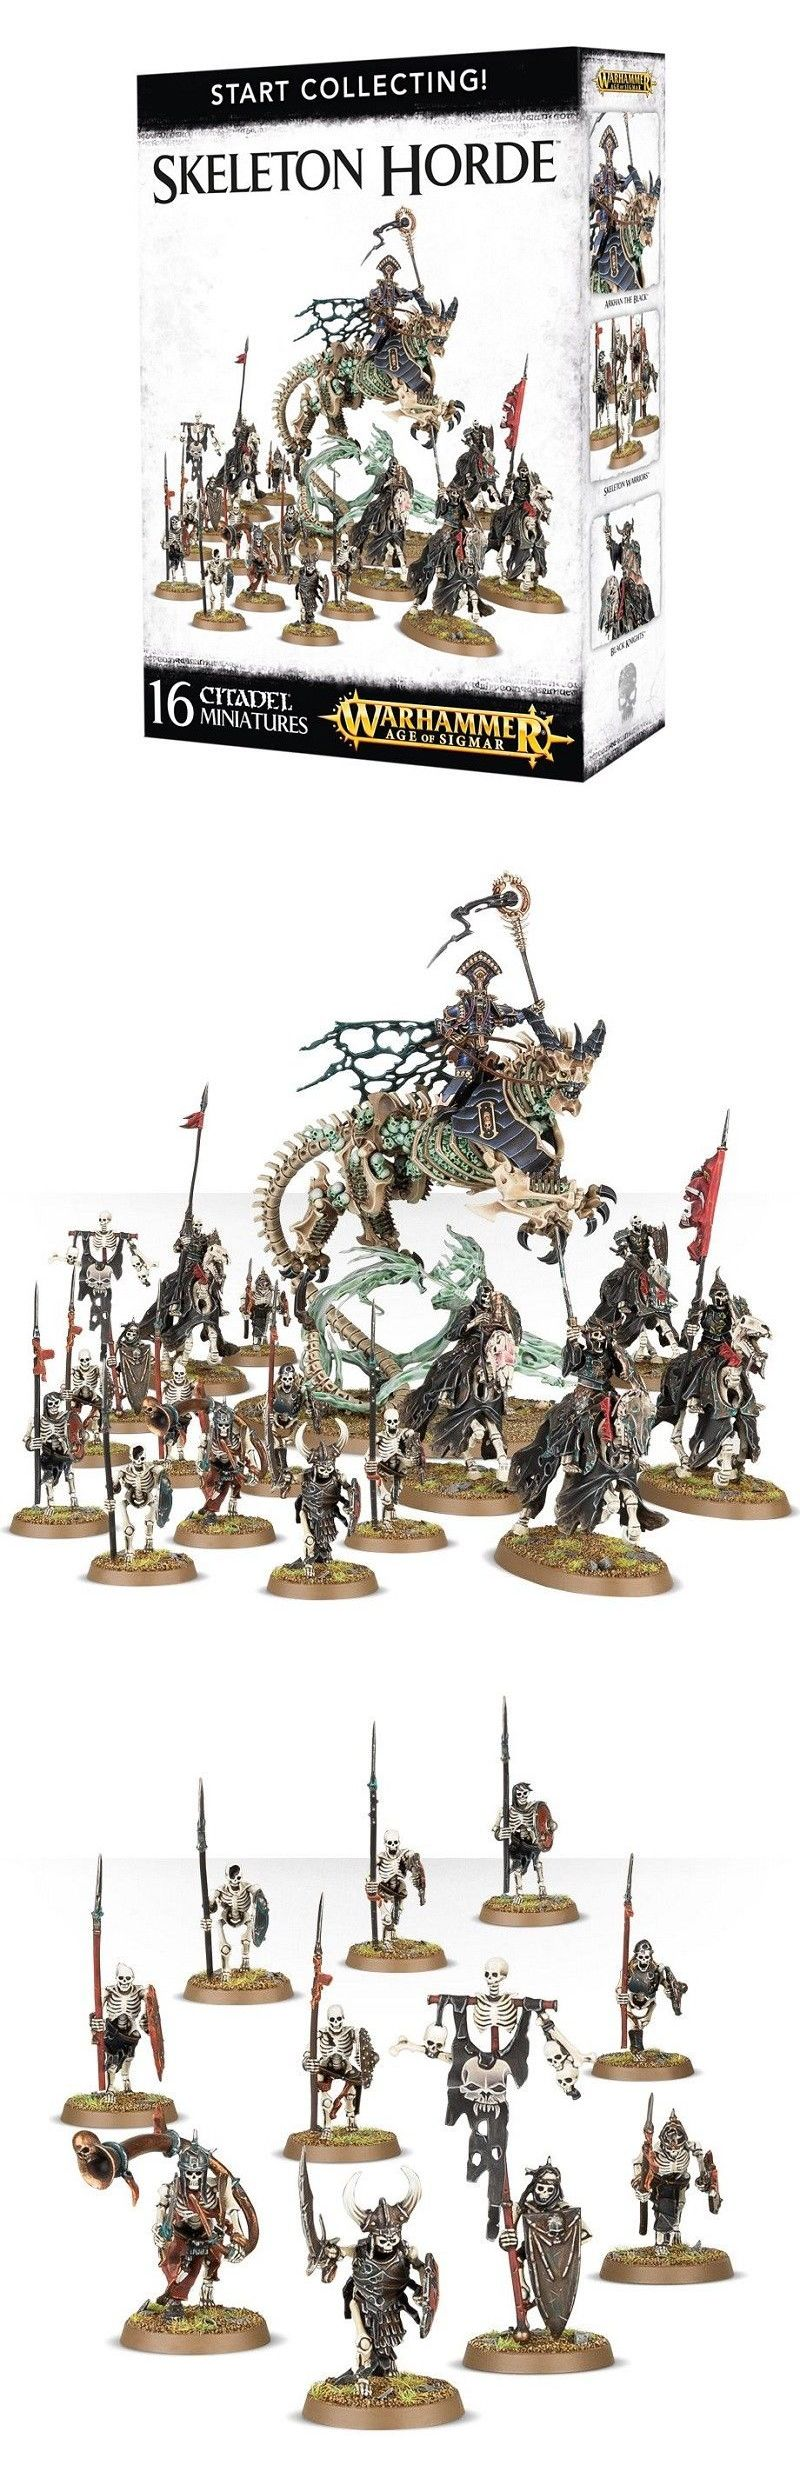 982f9e329f1 WFB Miniatures 183475  New  Warhammer Age Of Sigmar Start Collecting! Skeleton  Horde -  BUY IT NOW ONLY   70 on  eBay  miniatures  warhammer  sigmar  start  ...